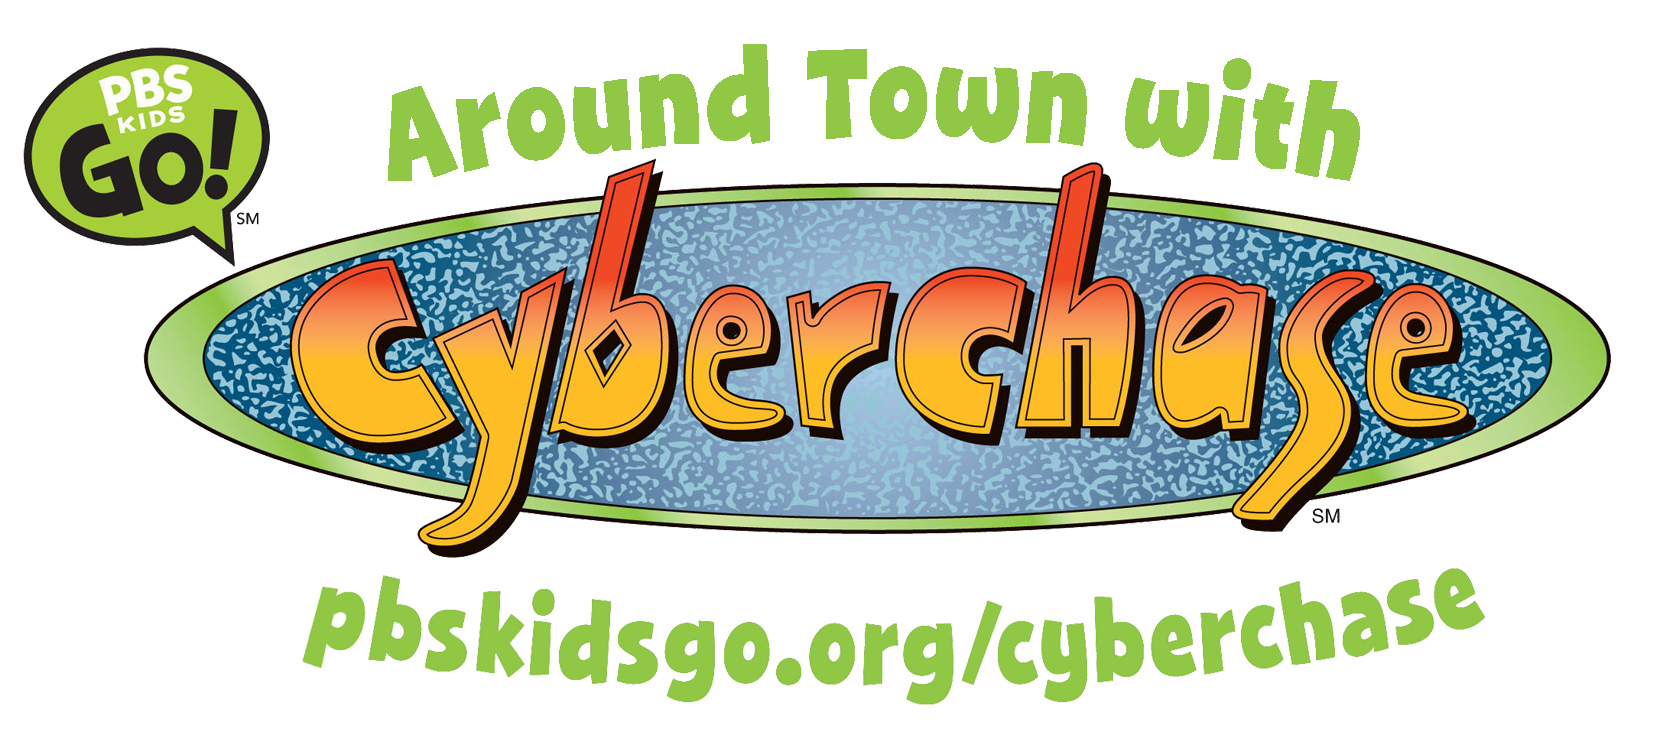 Around Town with CYBERCHASE logo